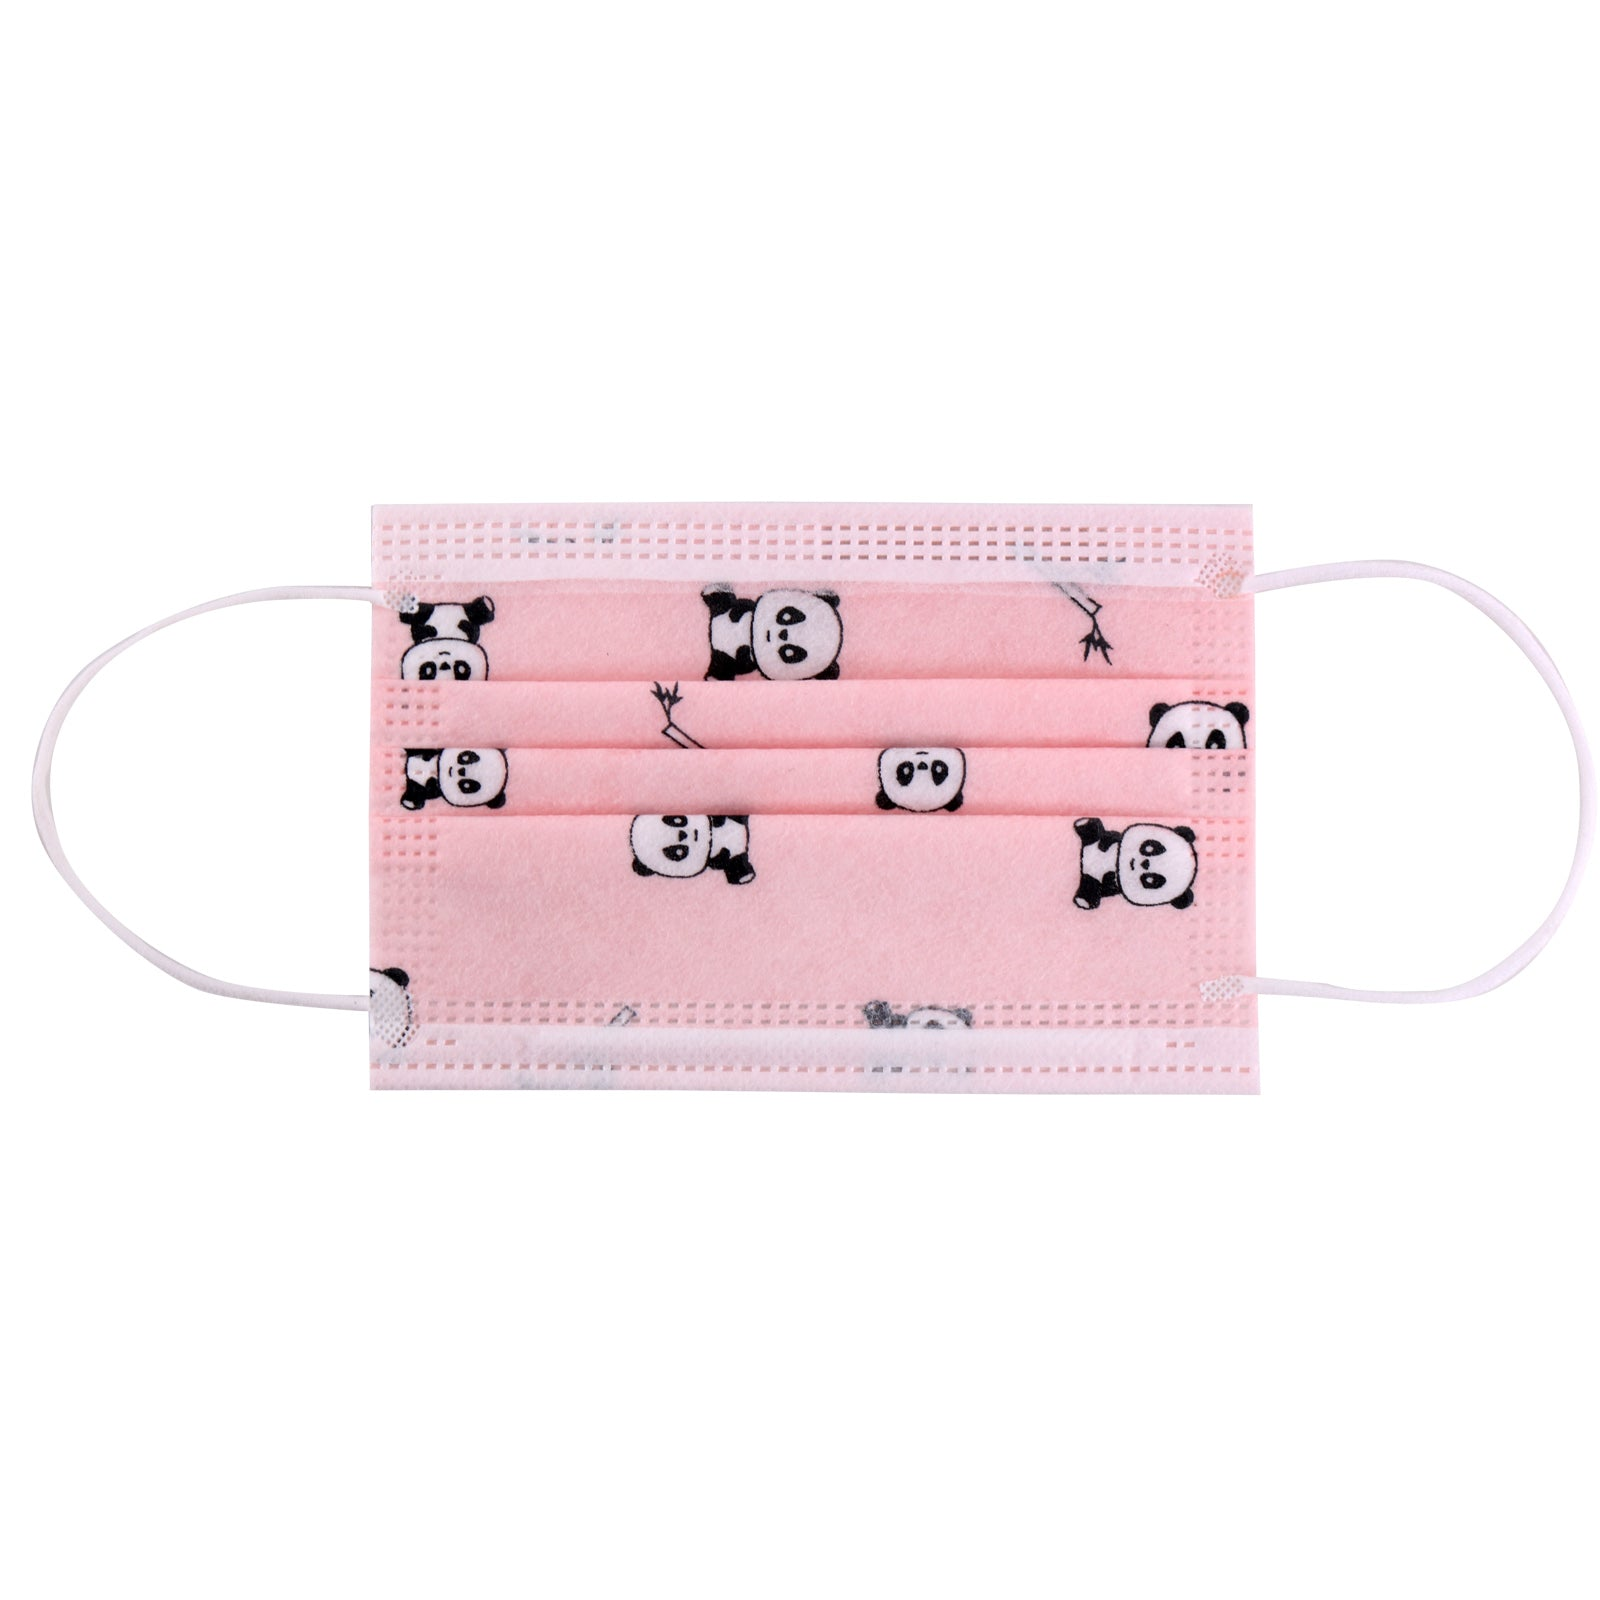 KD-FMPK1 American Bling Kids 3 Ply Disposable Pink Panda Face Mask Non-Medical (5pcs/Pack)